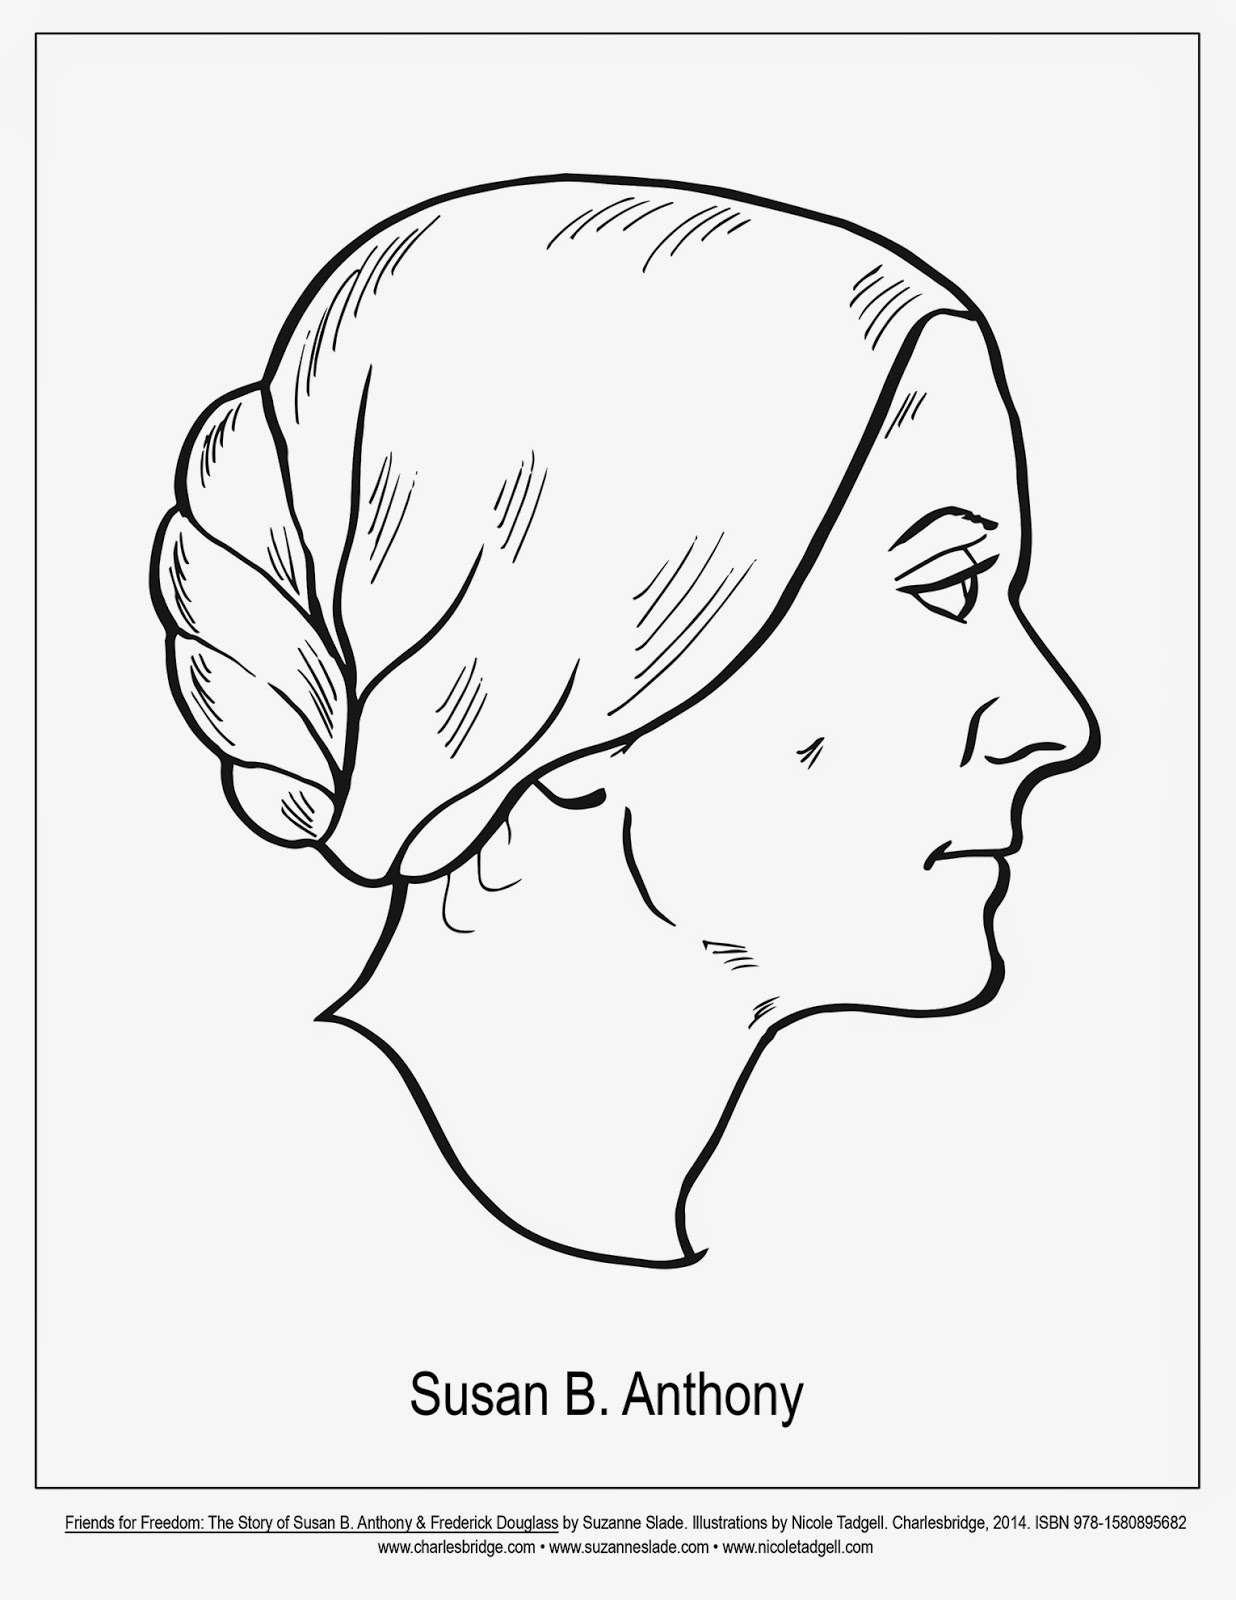 Susan B Anthony Coloring Page At Getcolorings